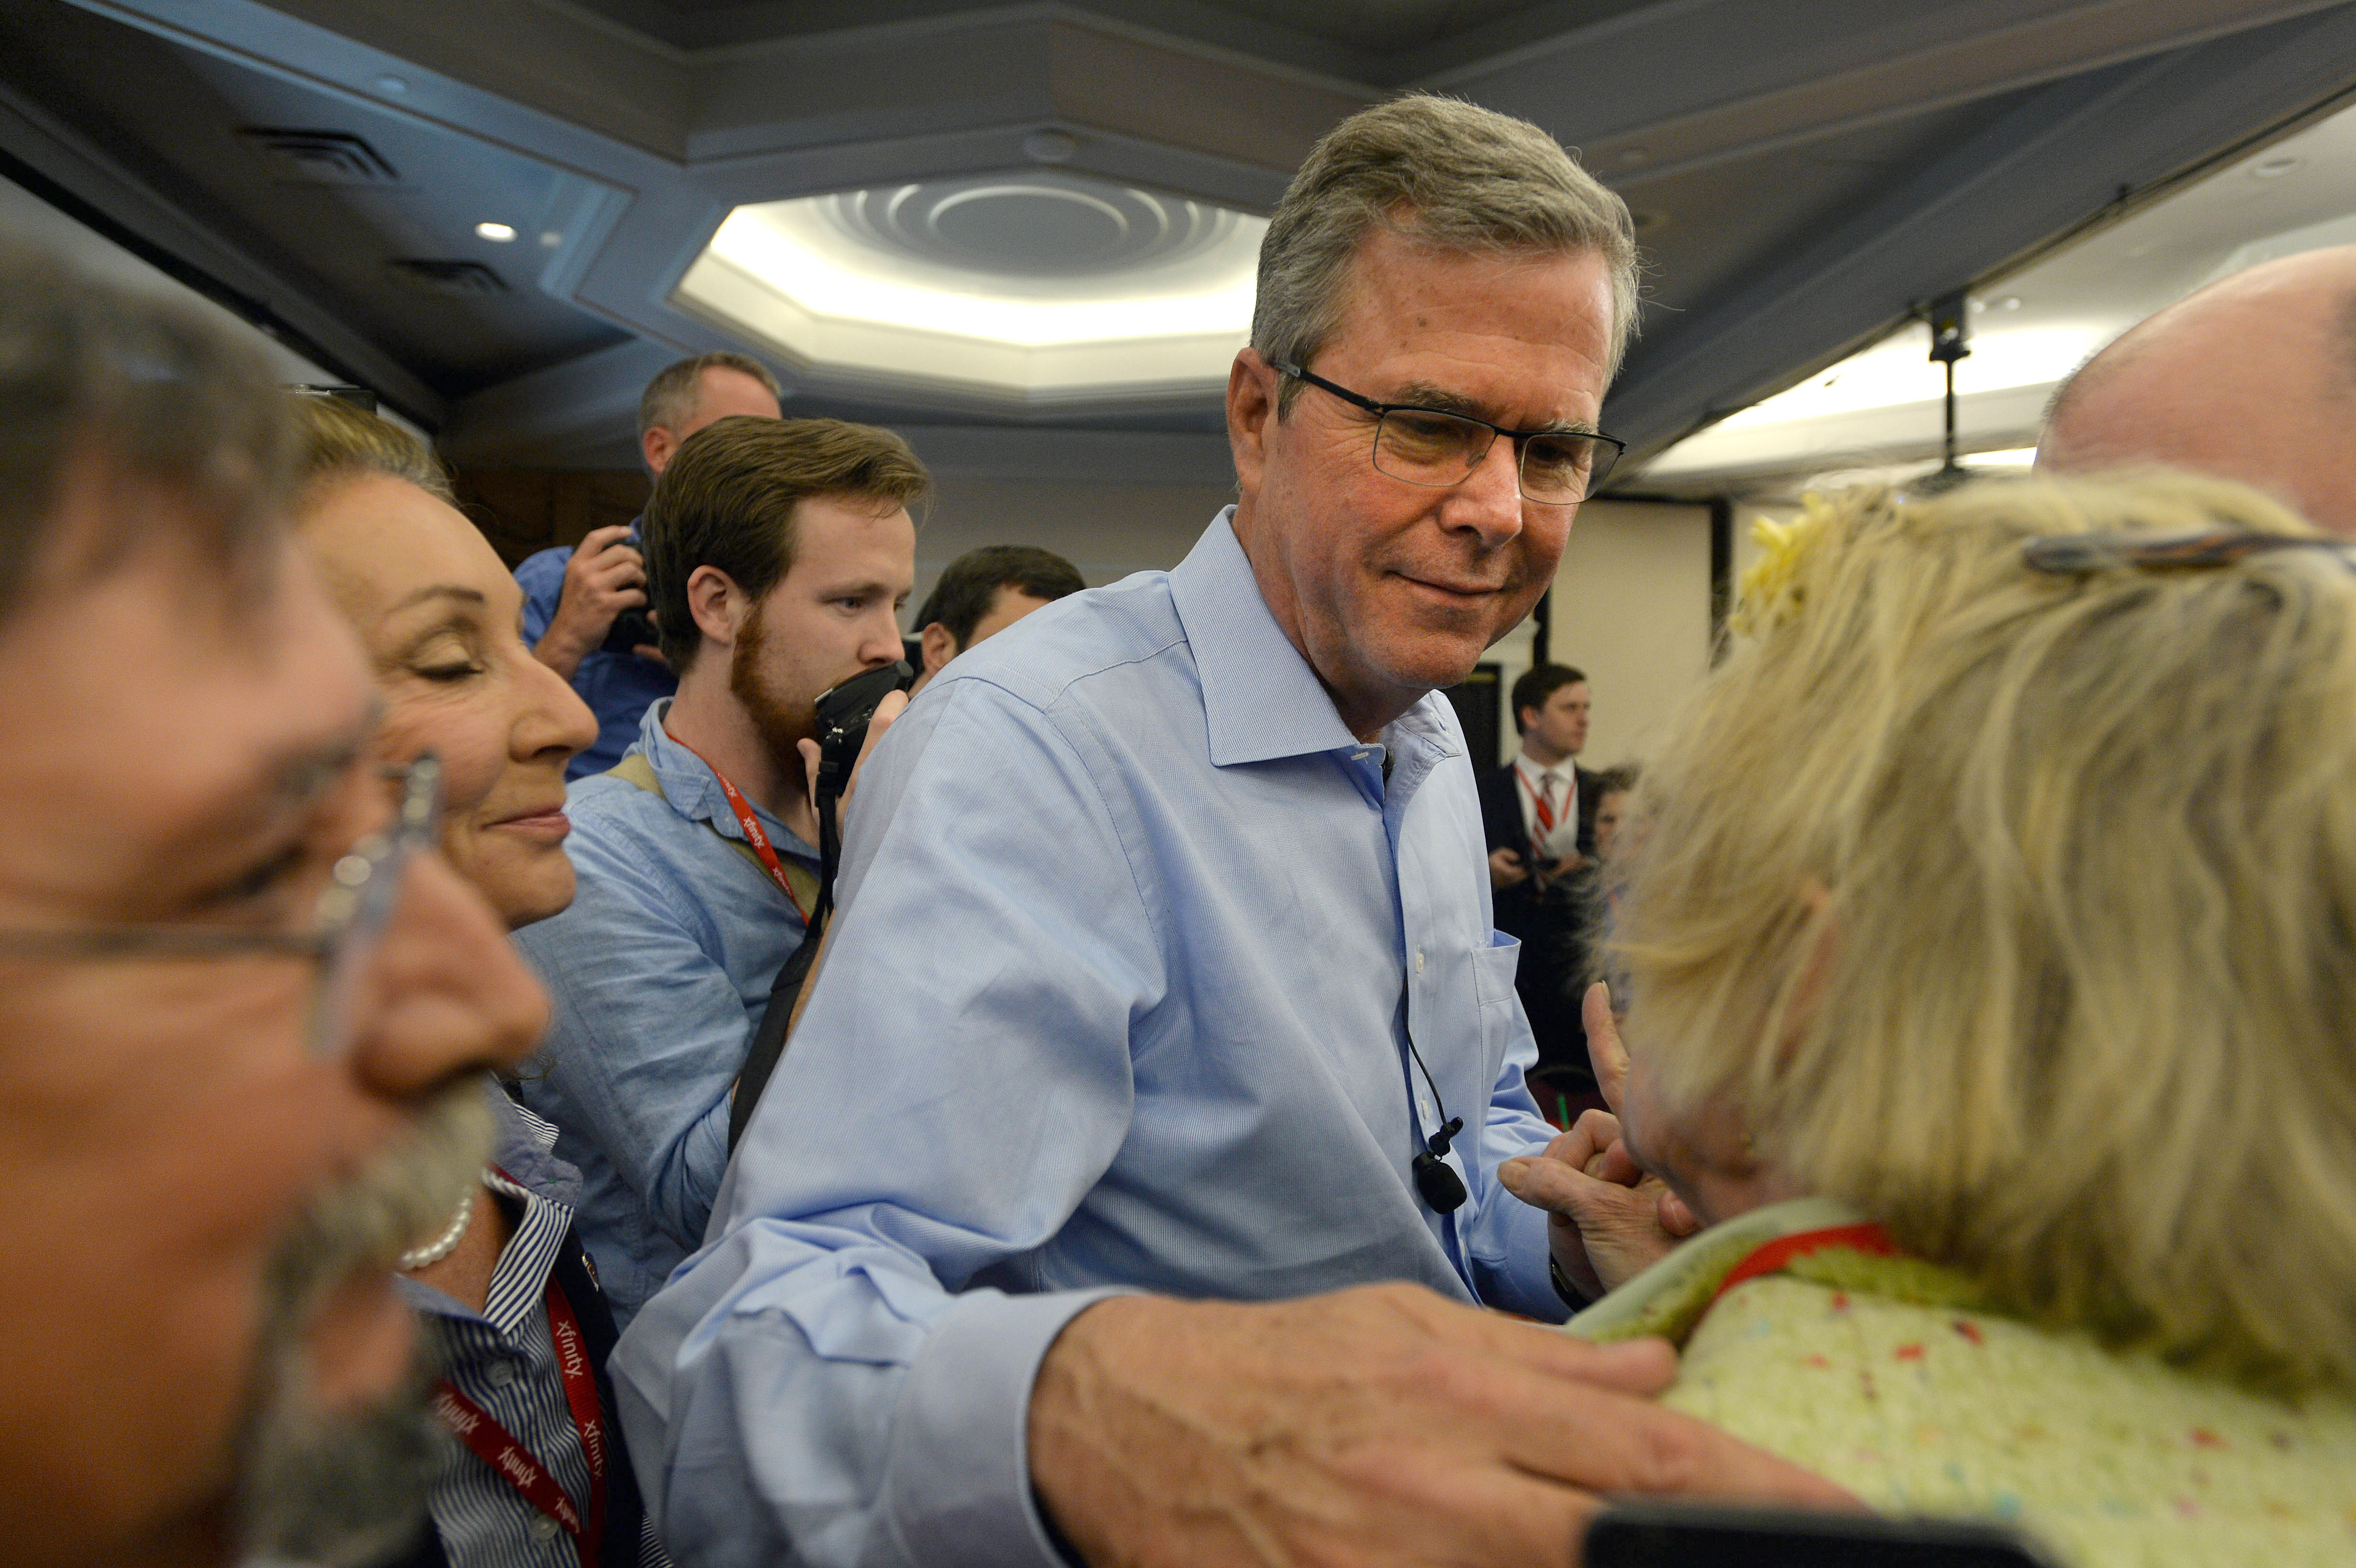 NASHUA, NH - APRIL 17: Former Florida Gov. Jeb Bush greets people after speaking at the First in the Nation Republican Leadership Summit April 17, 2015 in Nashua, New Hampshire. The Summit  brought together local and national Republicans and was attended by all the Republicans candidates as well as those eyeing a run for the nomination. (Photo by Darren McCollester/Getty Images)